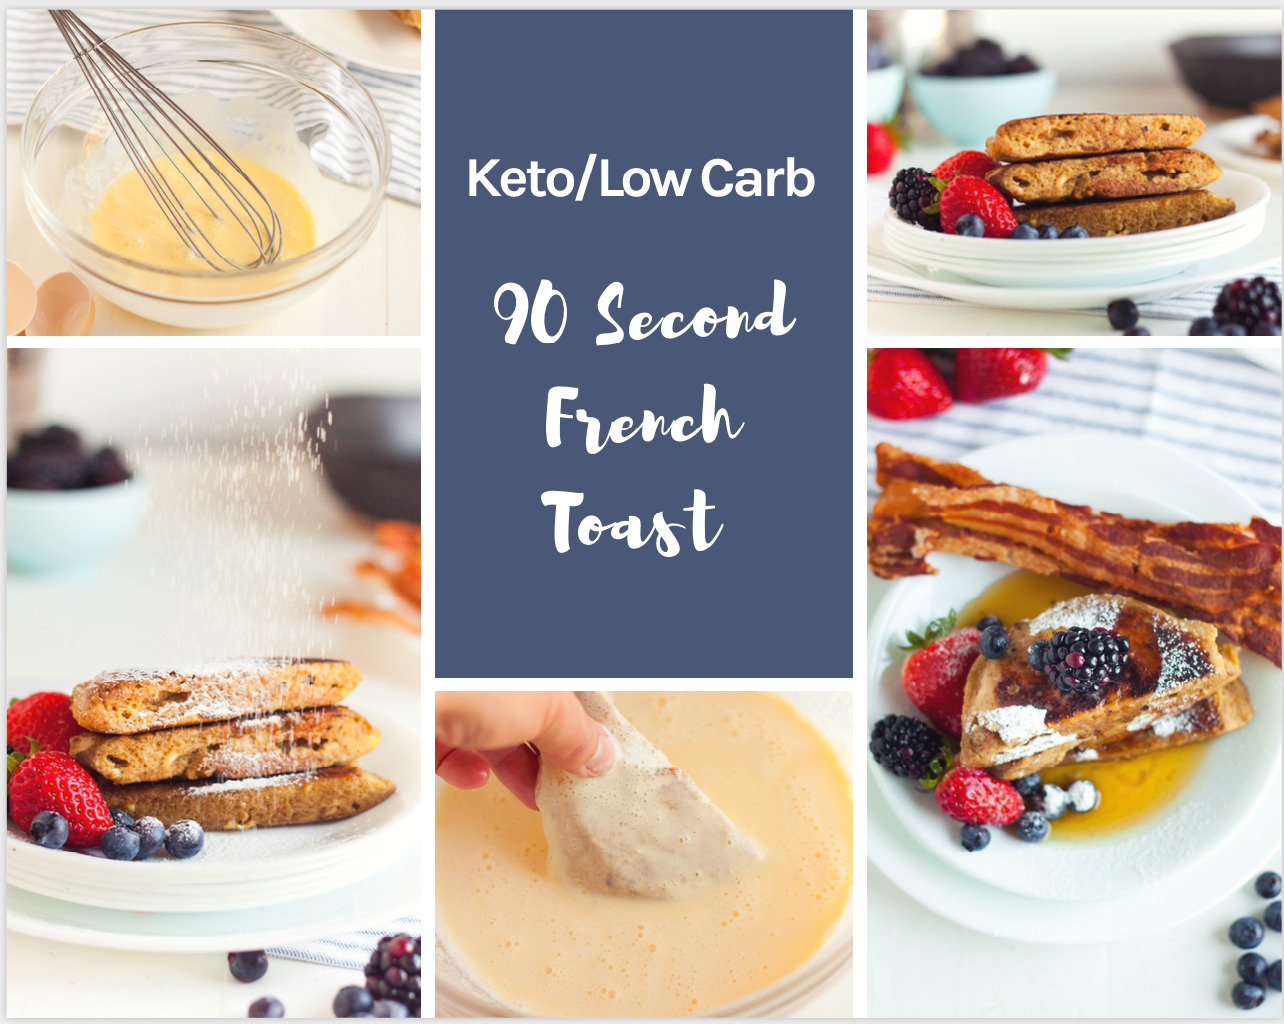 Keto French Toast is the ultimate breakfast recipe! This easy meal comes together in just minutes and is a perfect low carb keto breakfast idea!